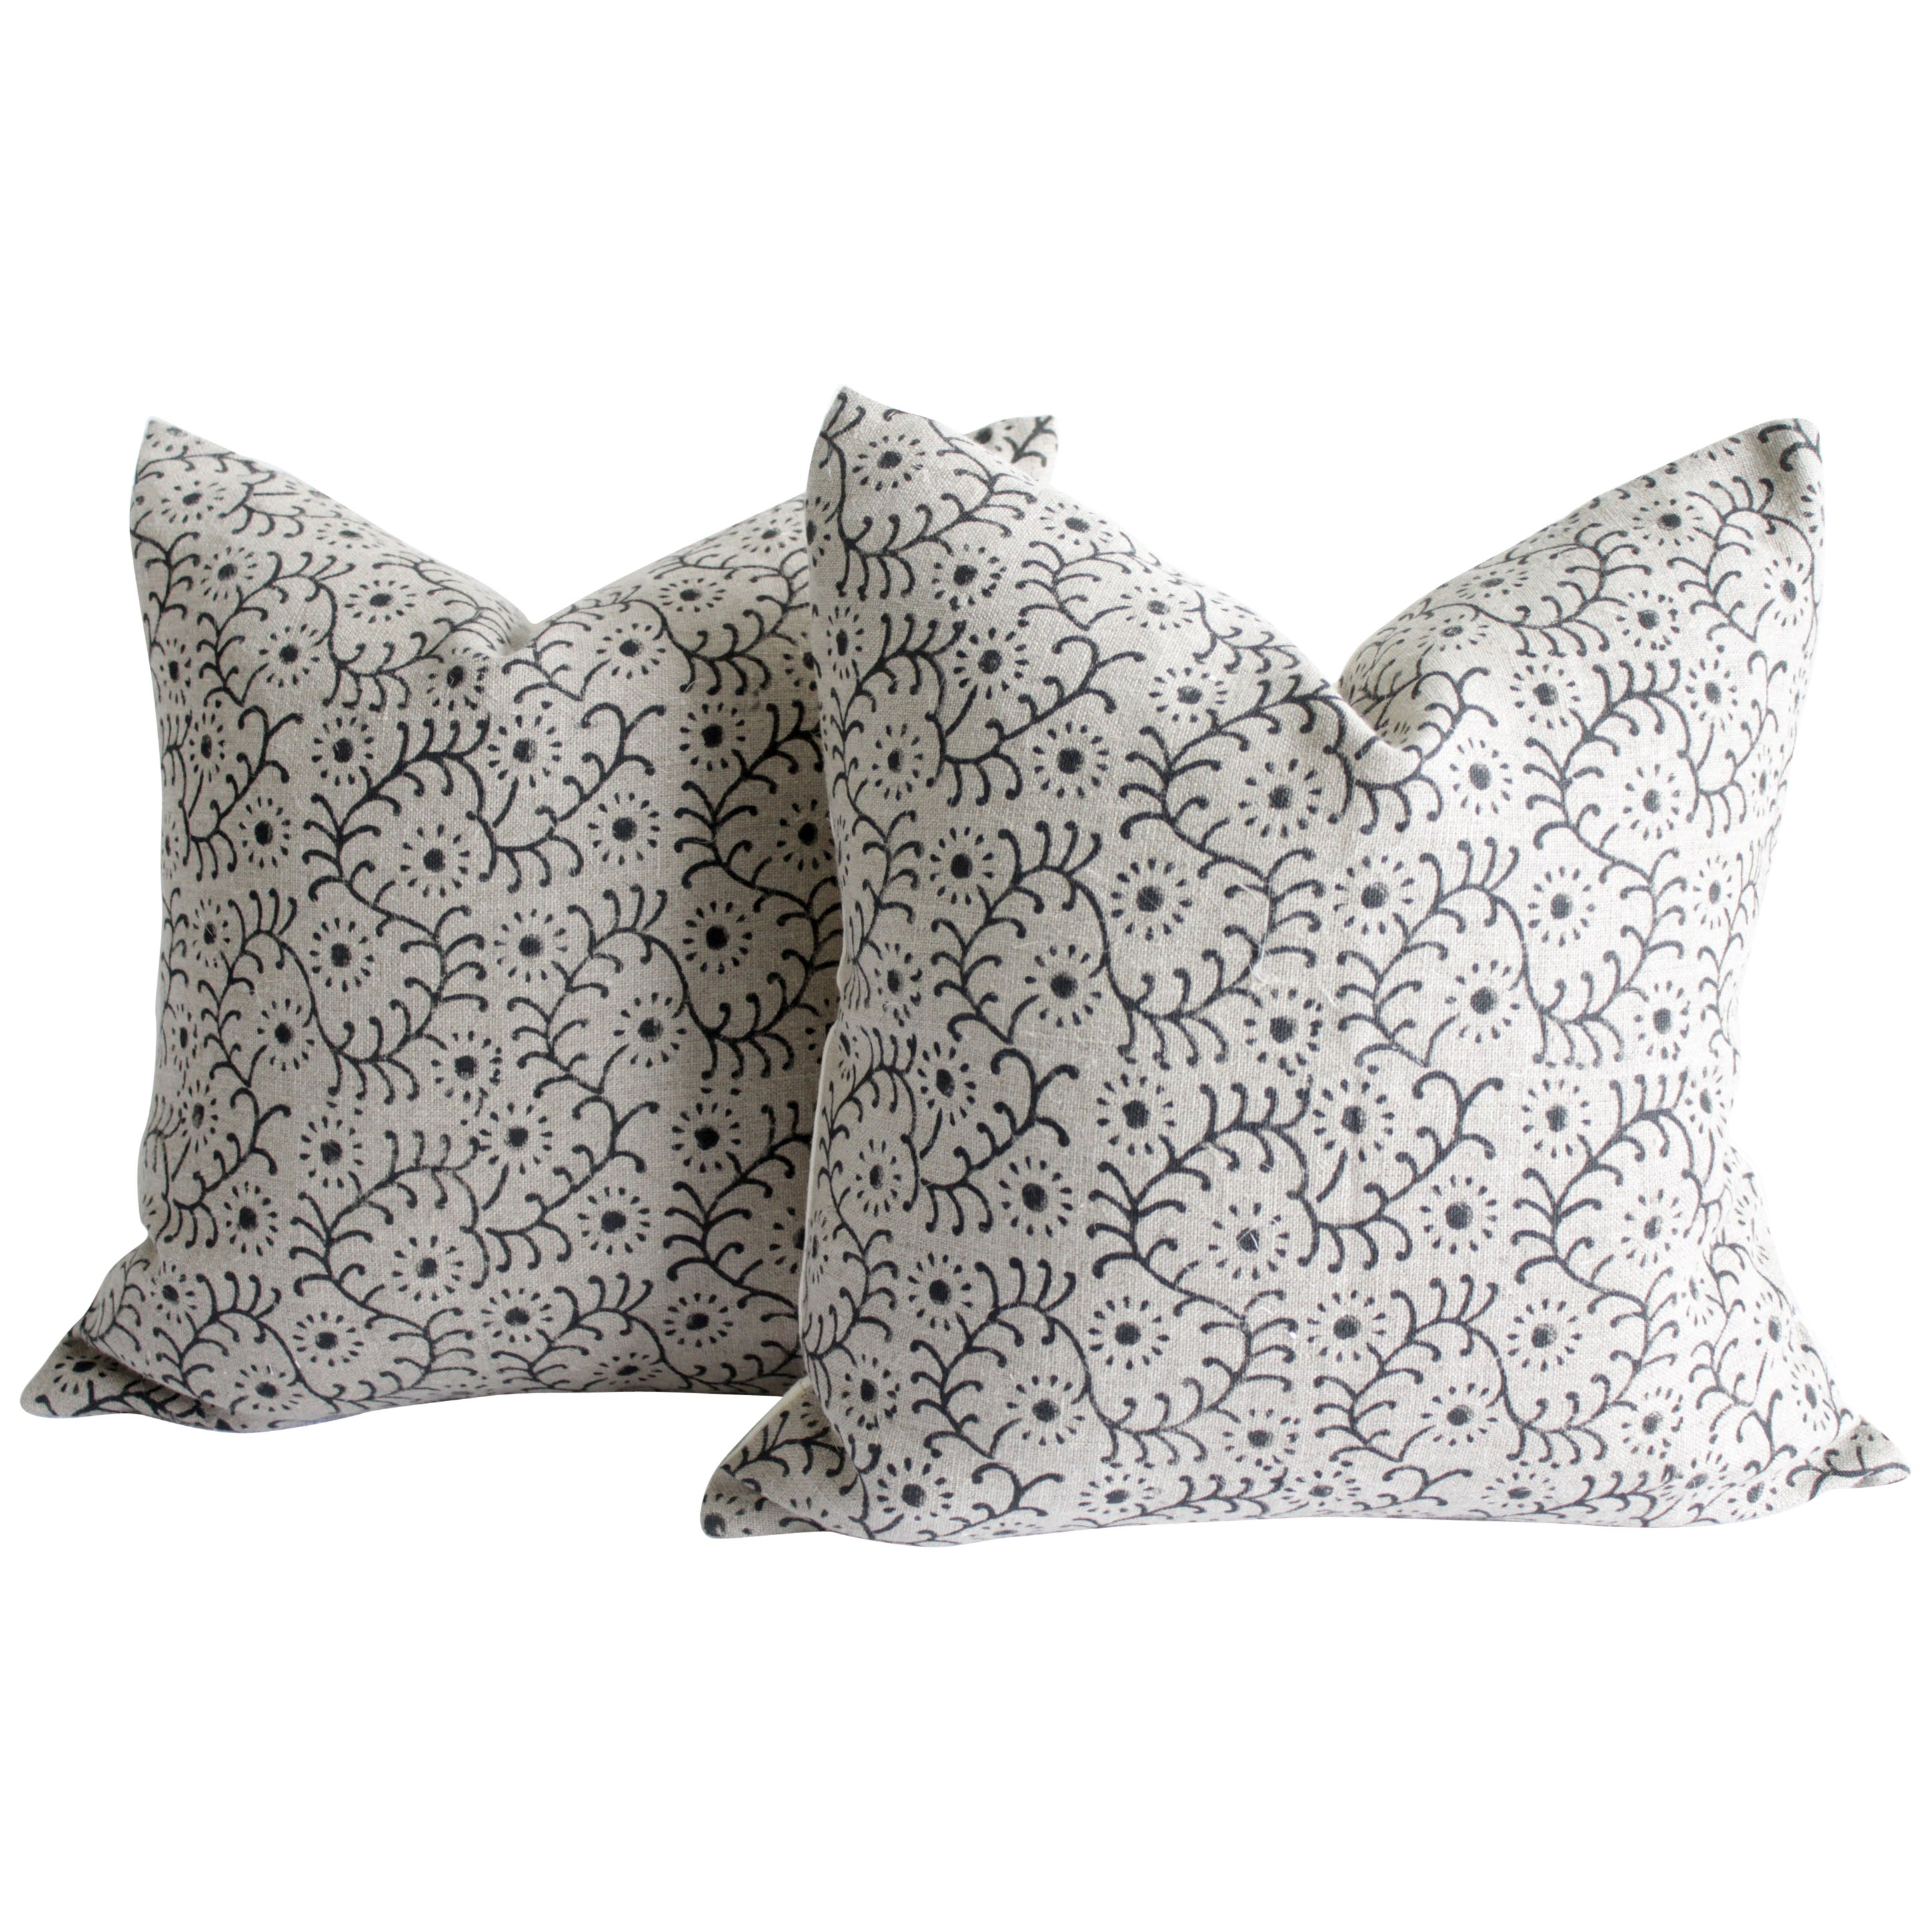 Linen Hand Block Accent Pillow Covers Natural and Black